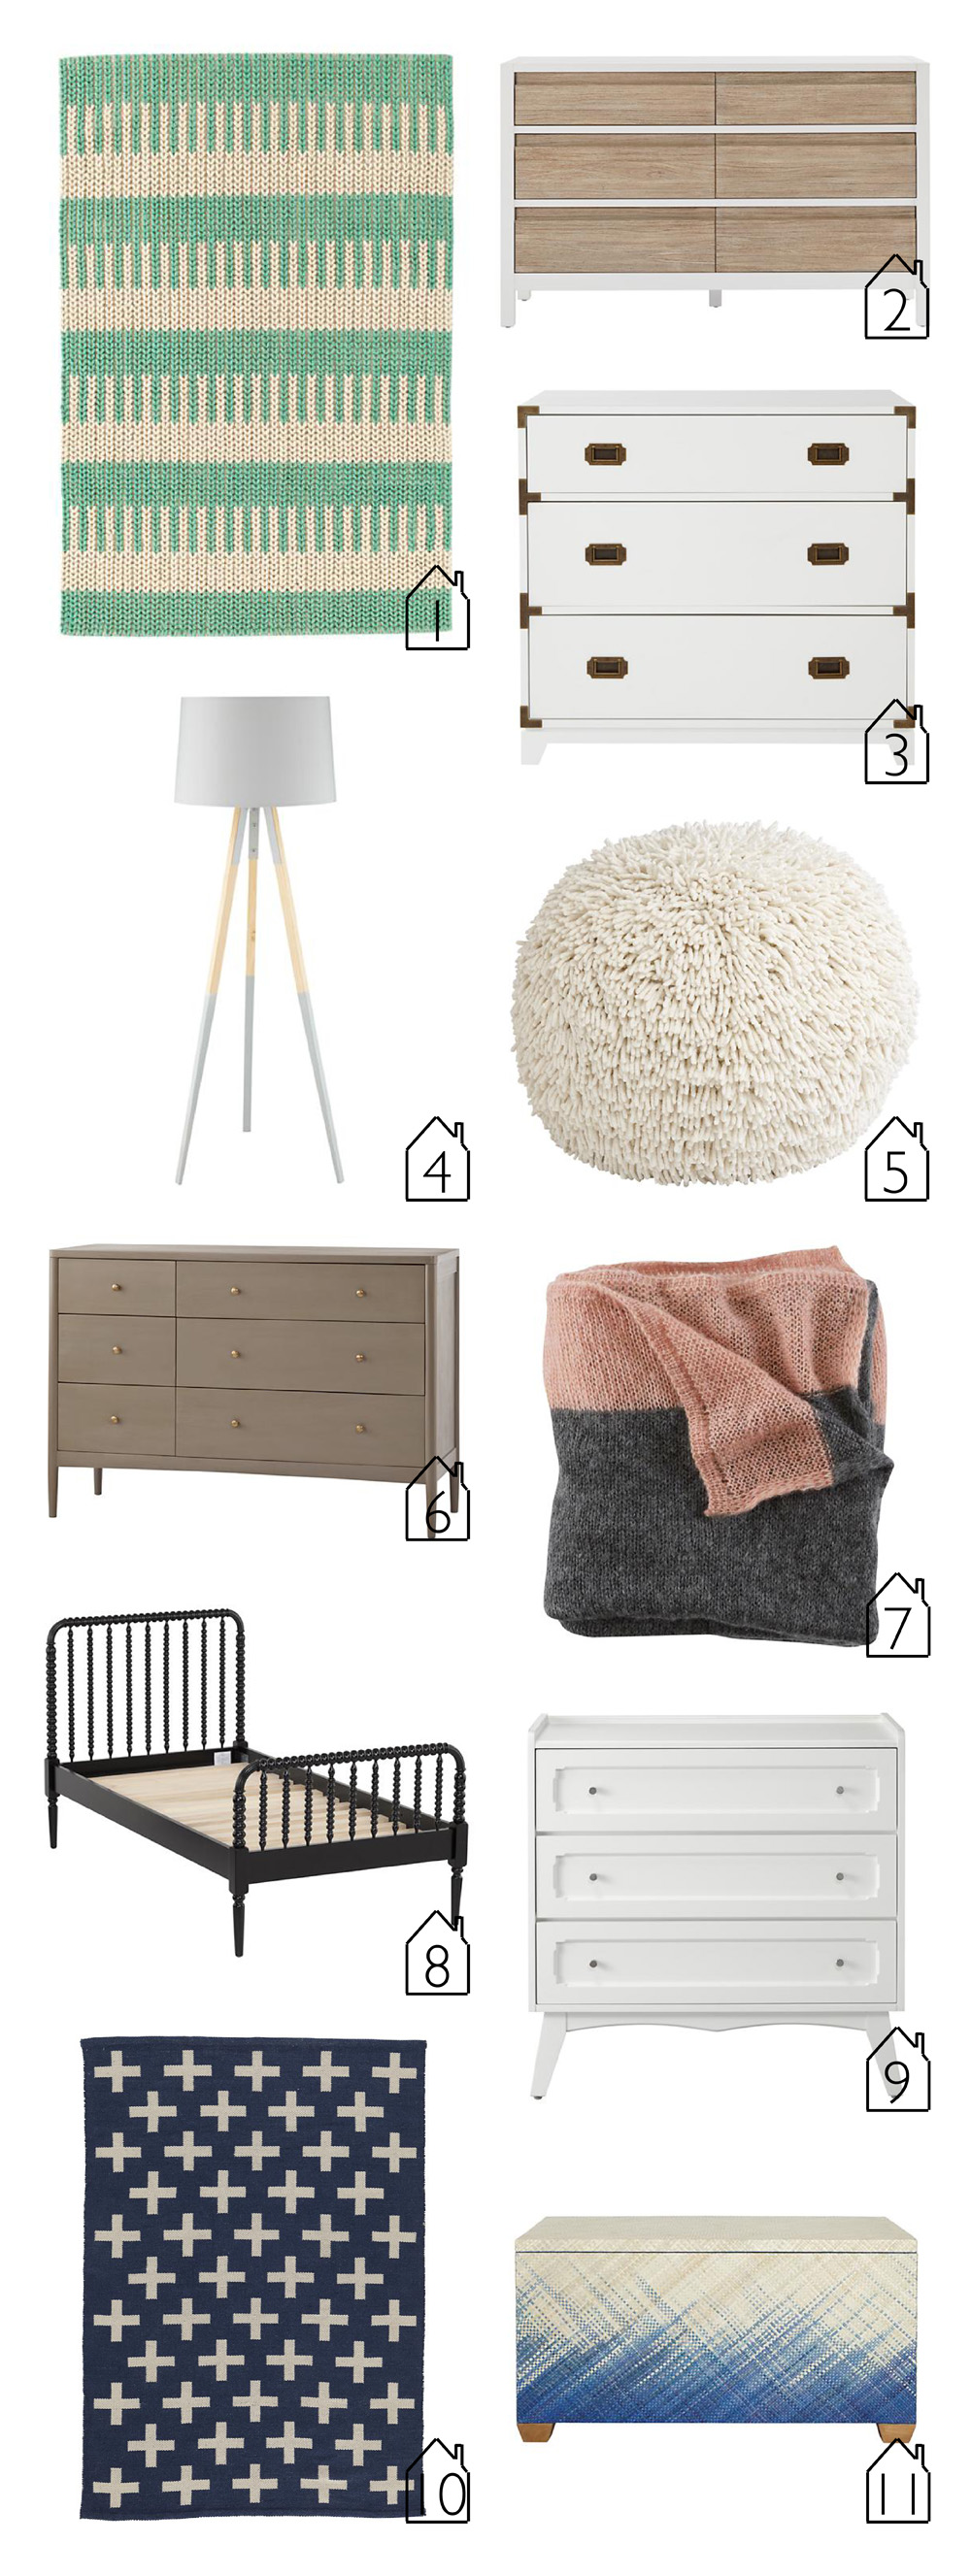 1.  88 Key Rug (Teal)   2.  Andersen 6 Drawer Dresser  3.  Campaign Dresser (white)  4.  Cinema Floor Lamp  5.  Shaggy Pouf   6.  Hampshire 6 Drawer Dresser (Clay )  7.  Swan Soiree Baby Bedding   8.  Jenny Lind Kids Bed (Black)   9.  Monarch 3 Drawer Dresser  10.  Indoor + Outdoor Rug (Blue)   11.  Color Weave Toy Box (Blue)